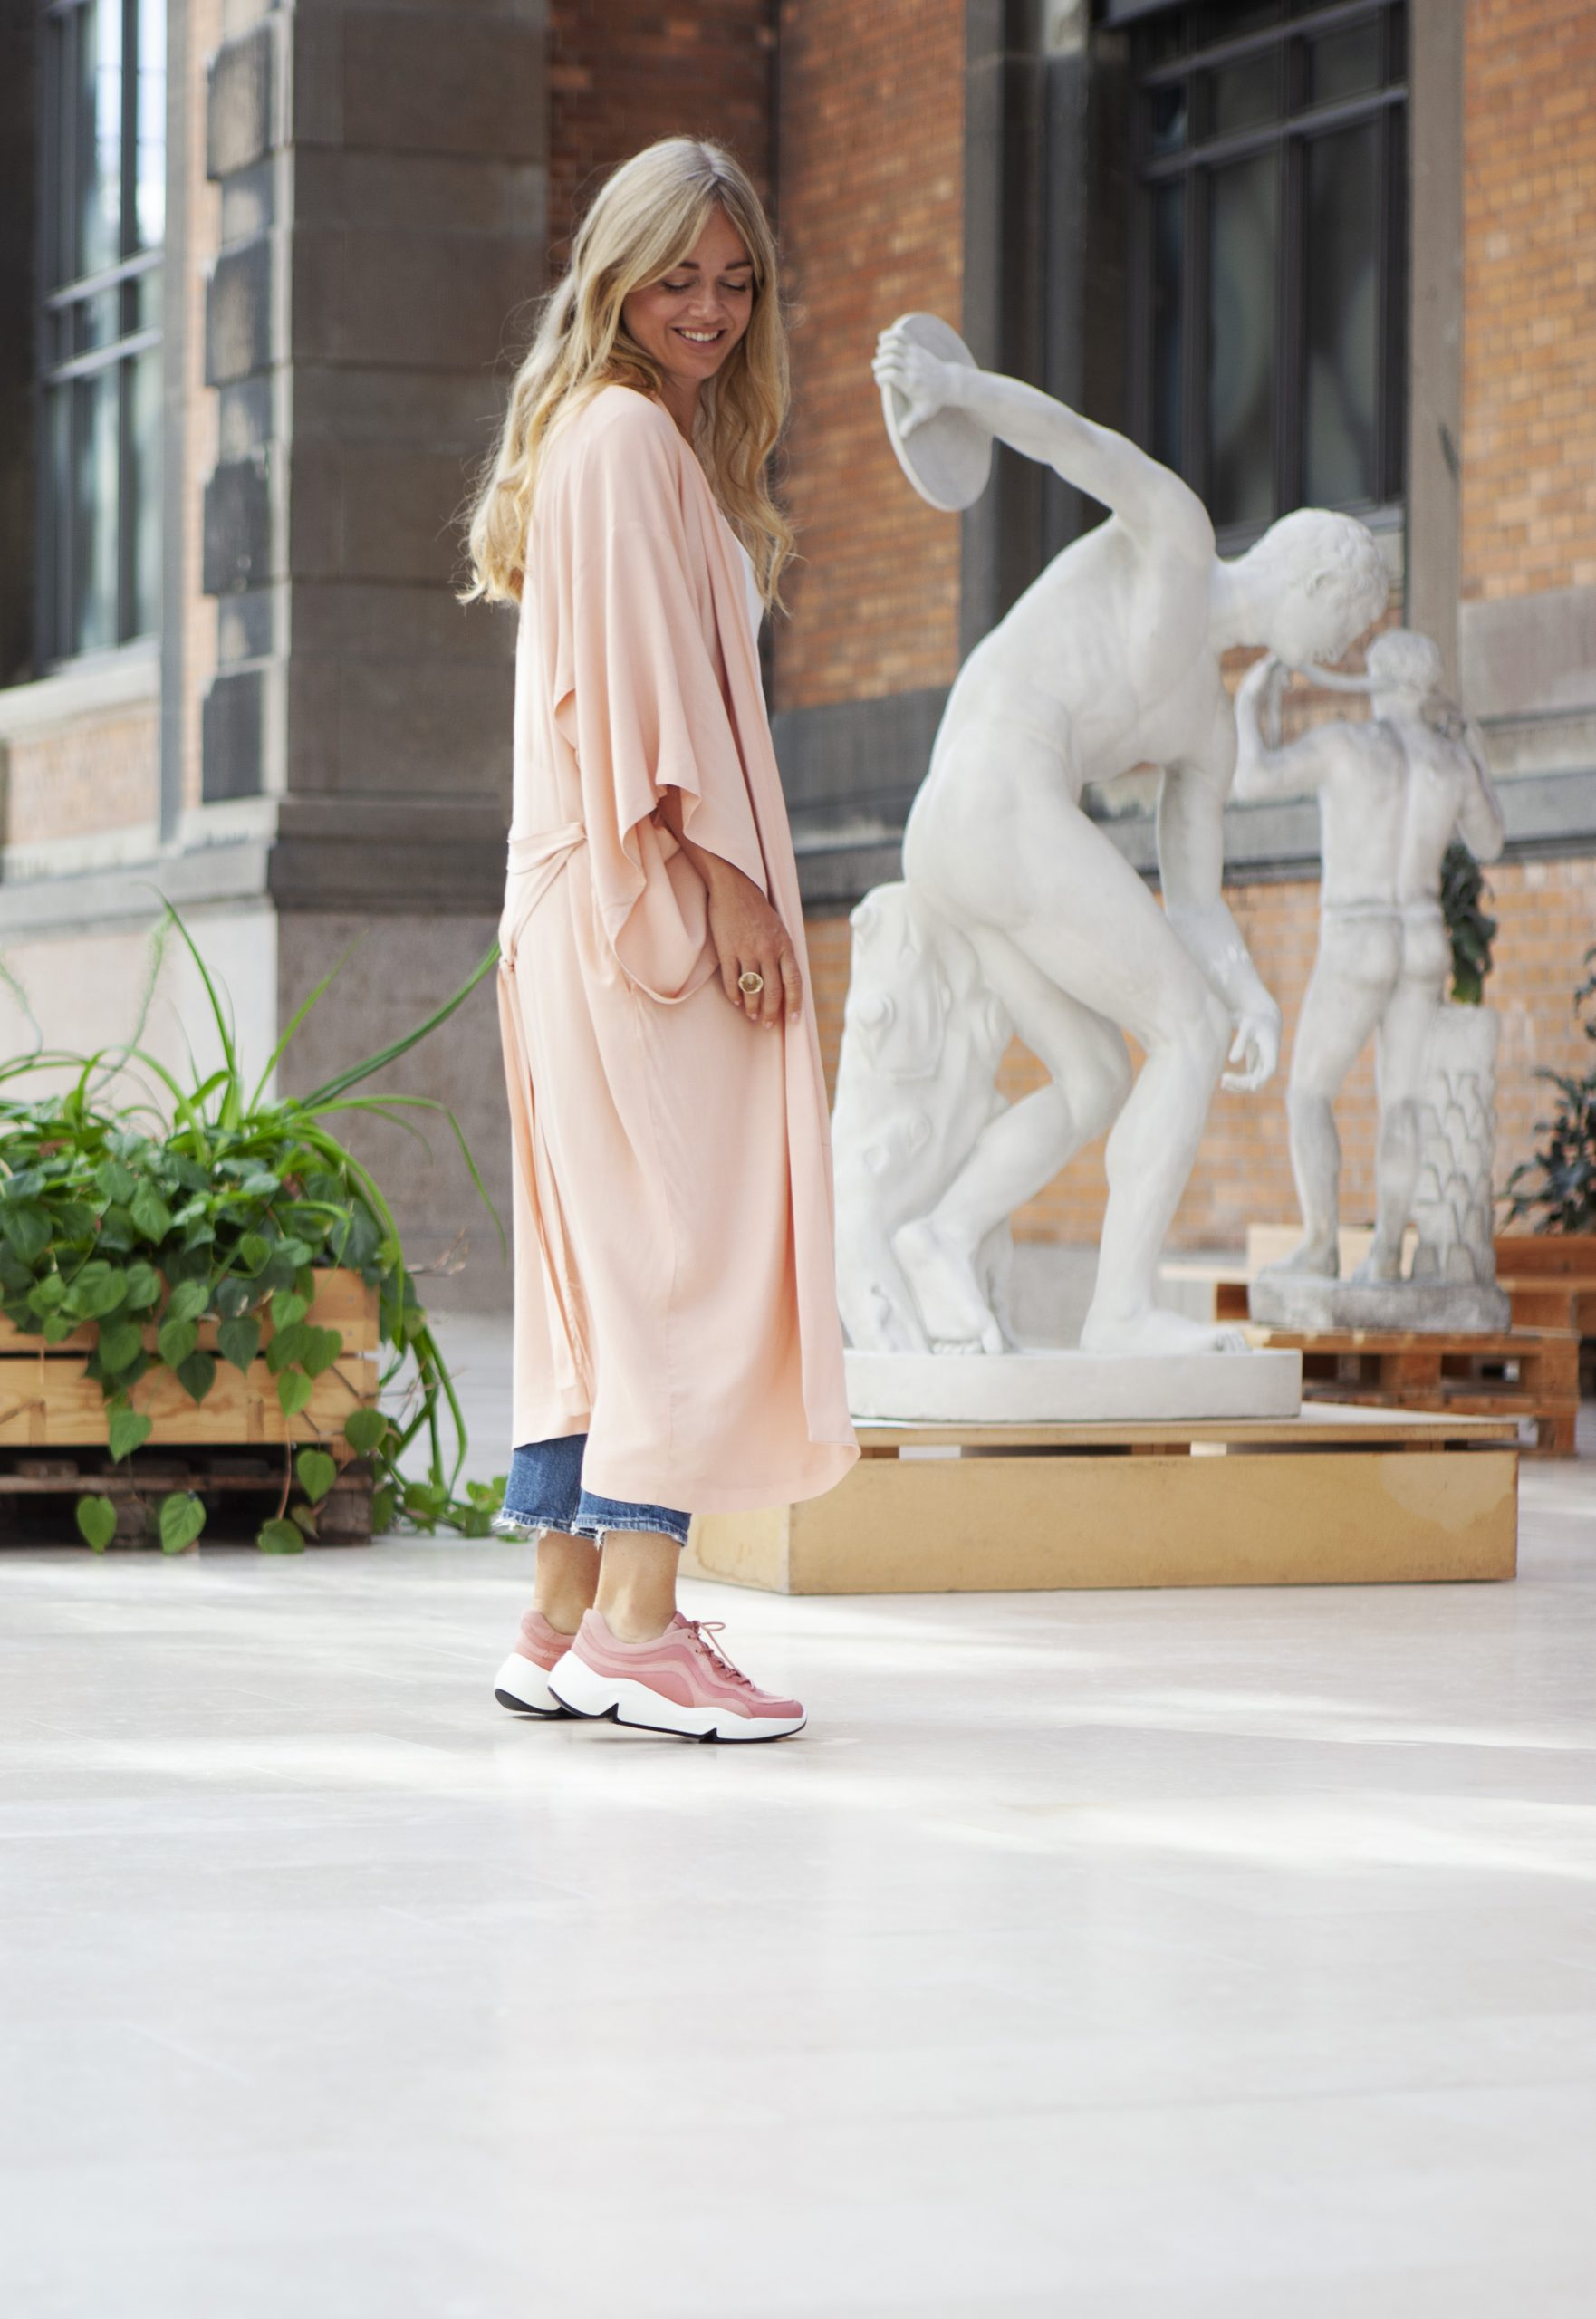 Ebba von Sydow wearing a light pink robe standing outside in front of an art museum with white antique statues